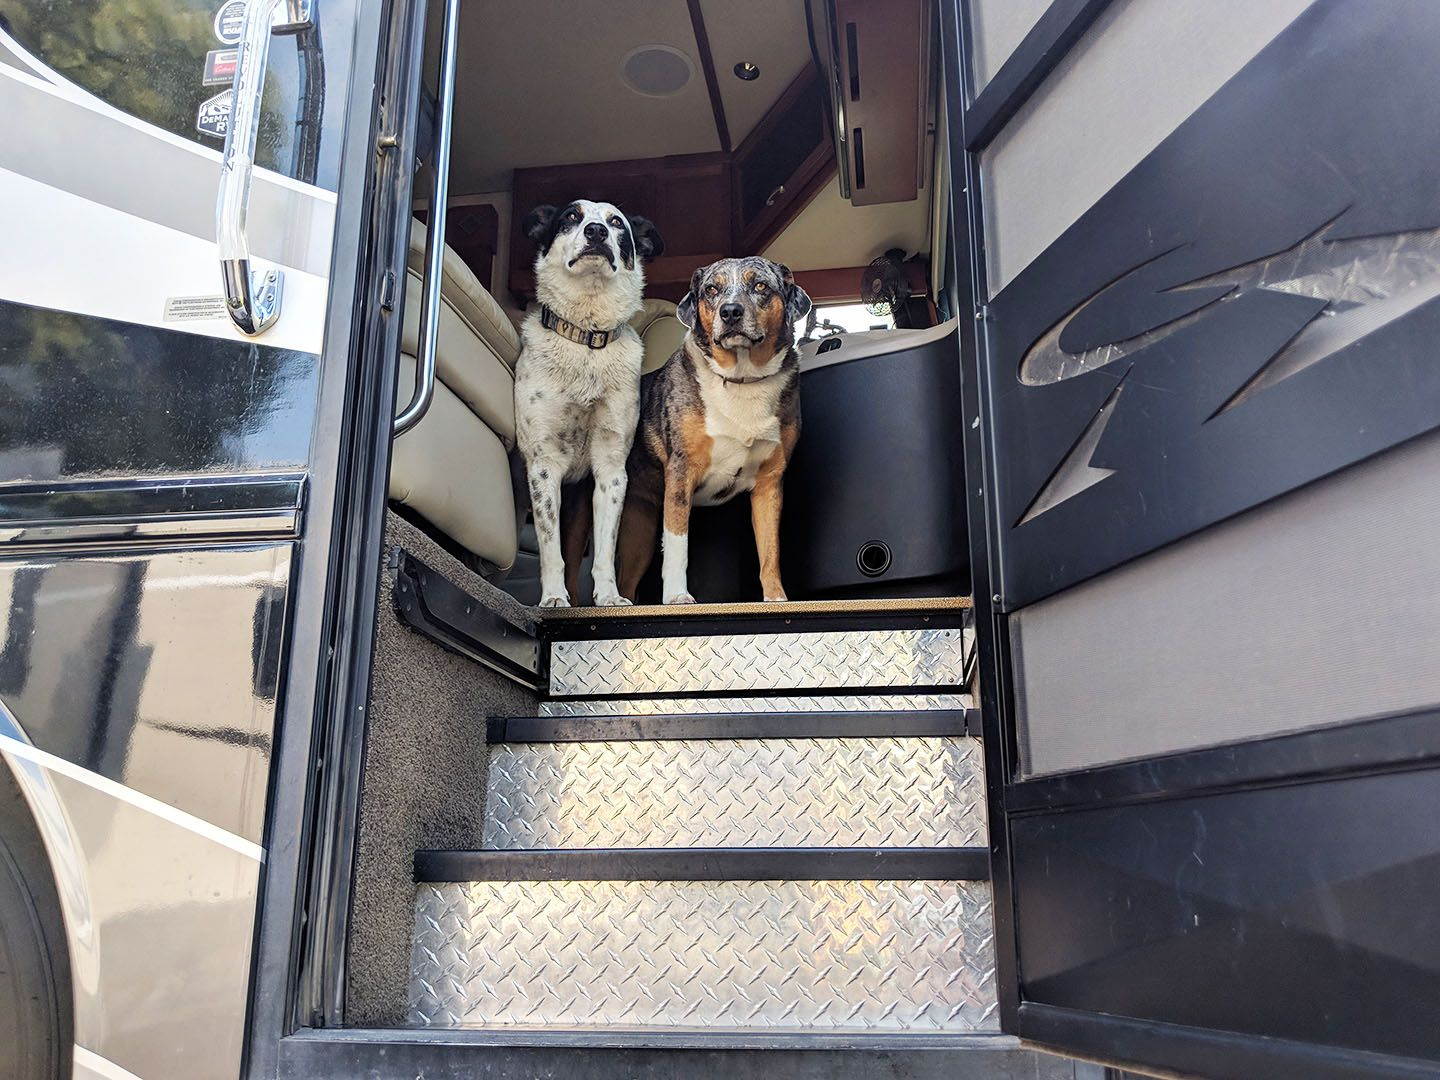 How-to: Teach your dog to wait at the RV door